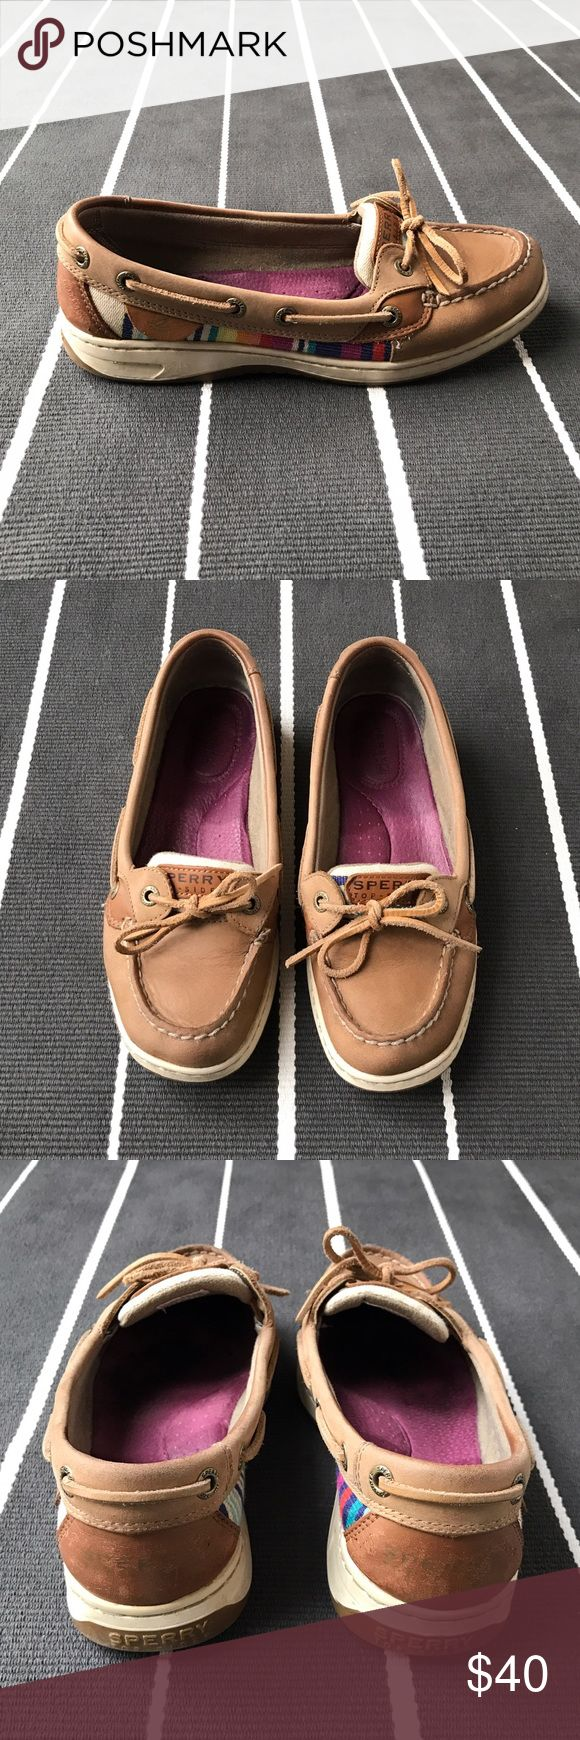 Sperry's women's Angelfish boat shoe Lightly worn boat shoe with great accent colors! Comfortable leather insoles. Sperry Top-Sider Shoes Flats & Loafers